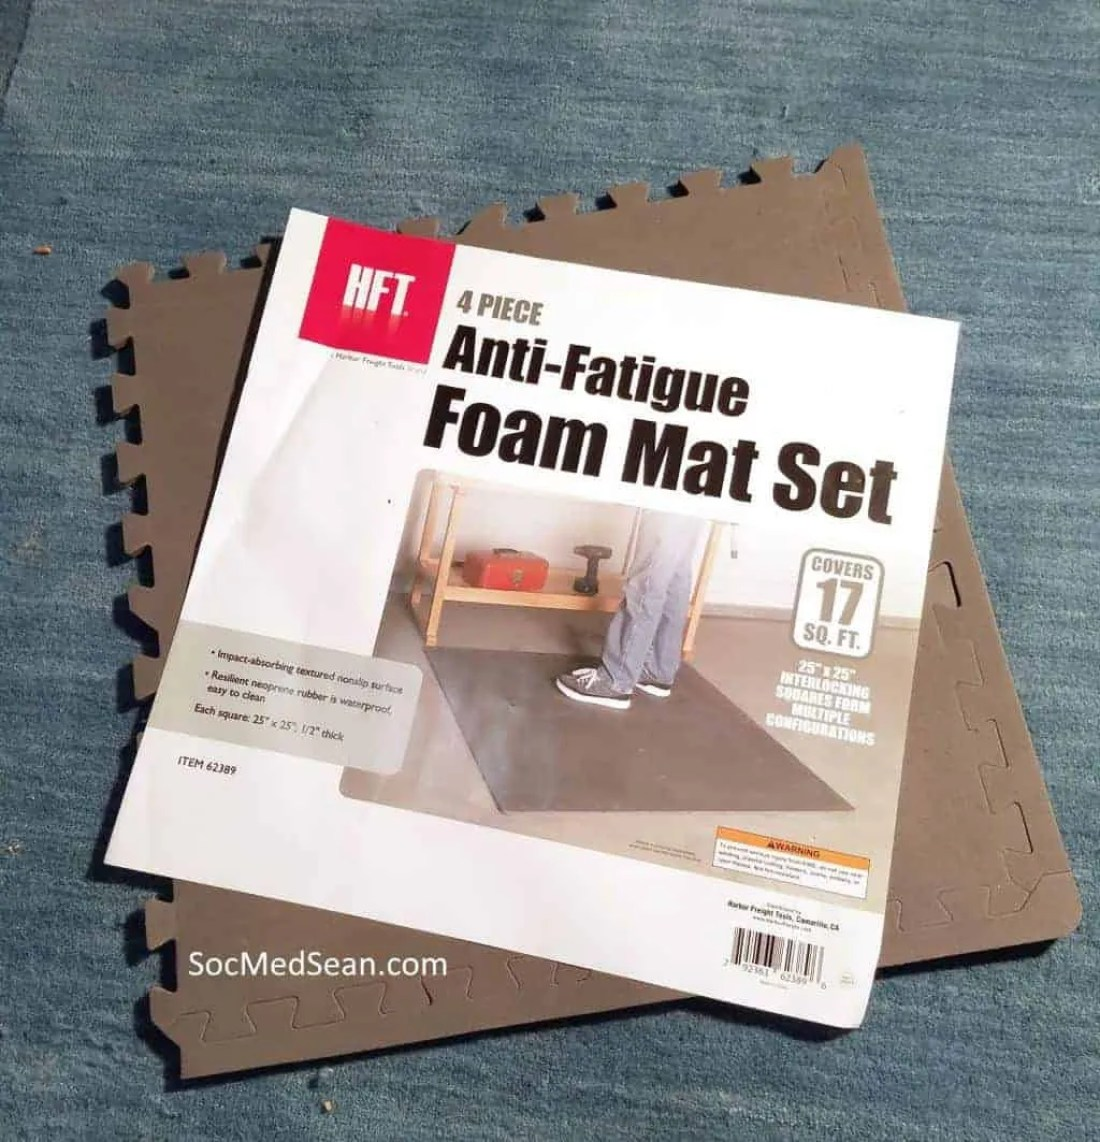 I use this craft foam from Harbor Freight because it is nice and dense and inexpensive